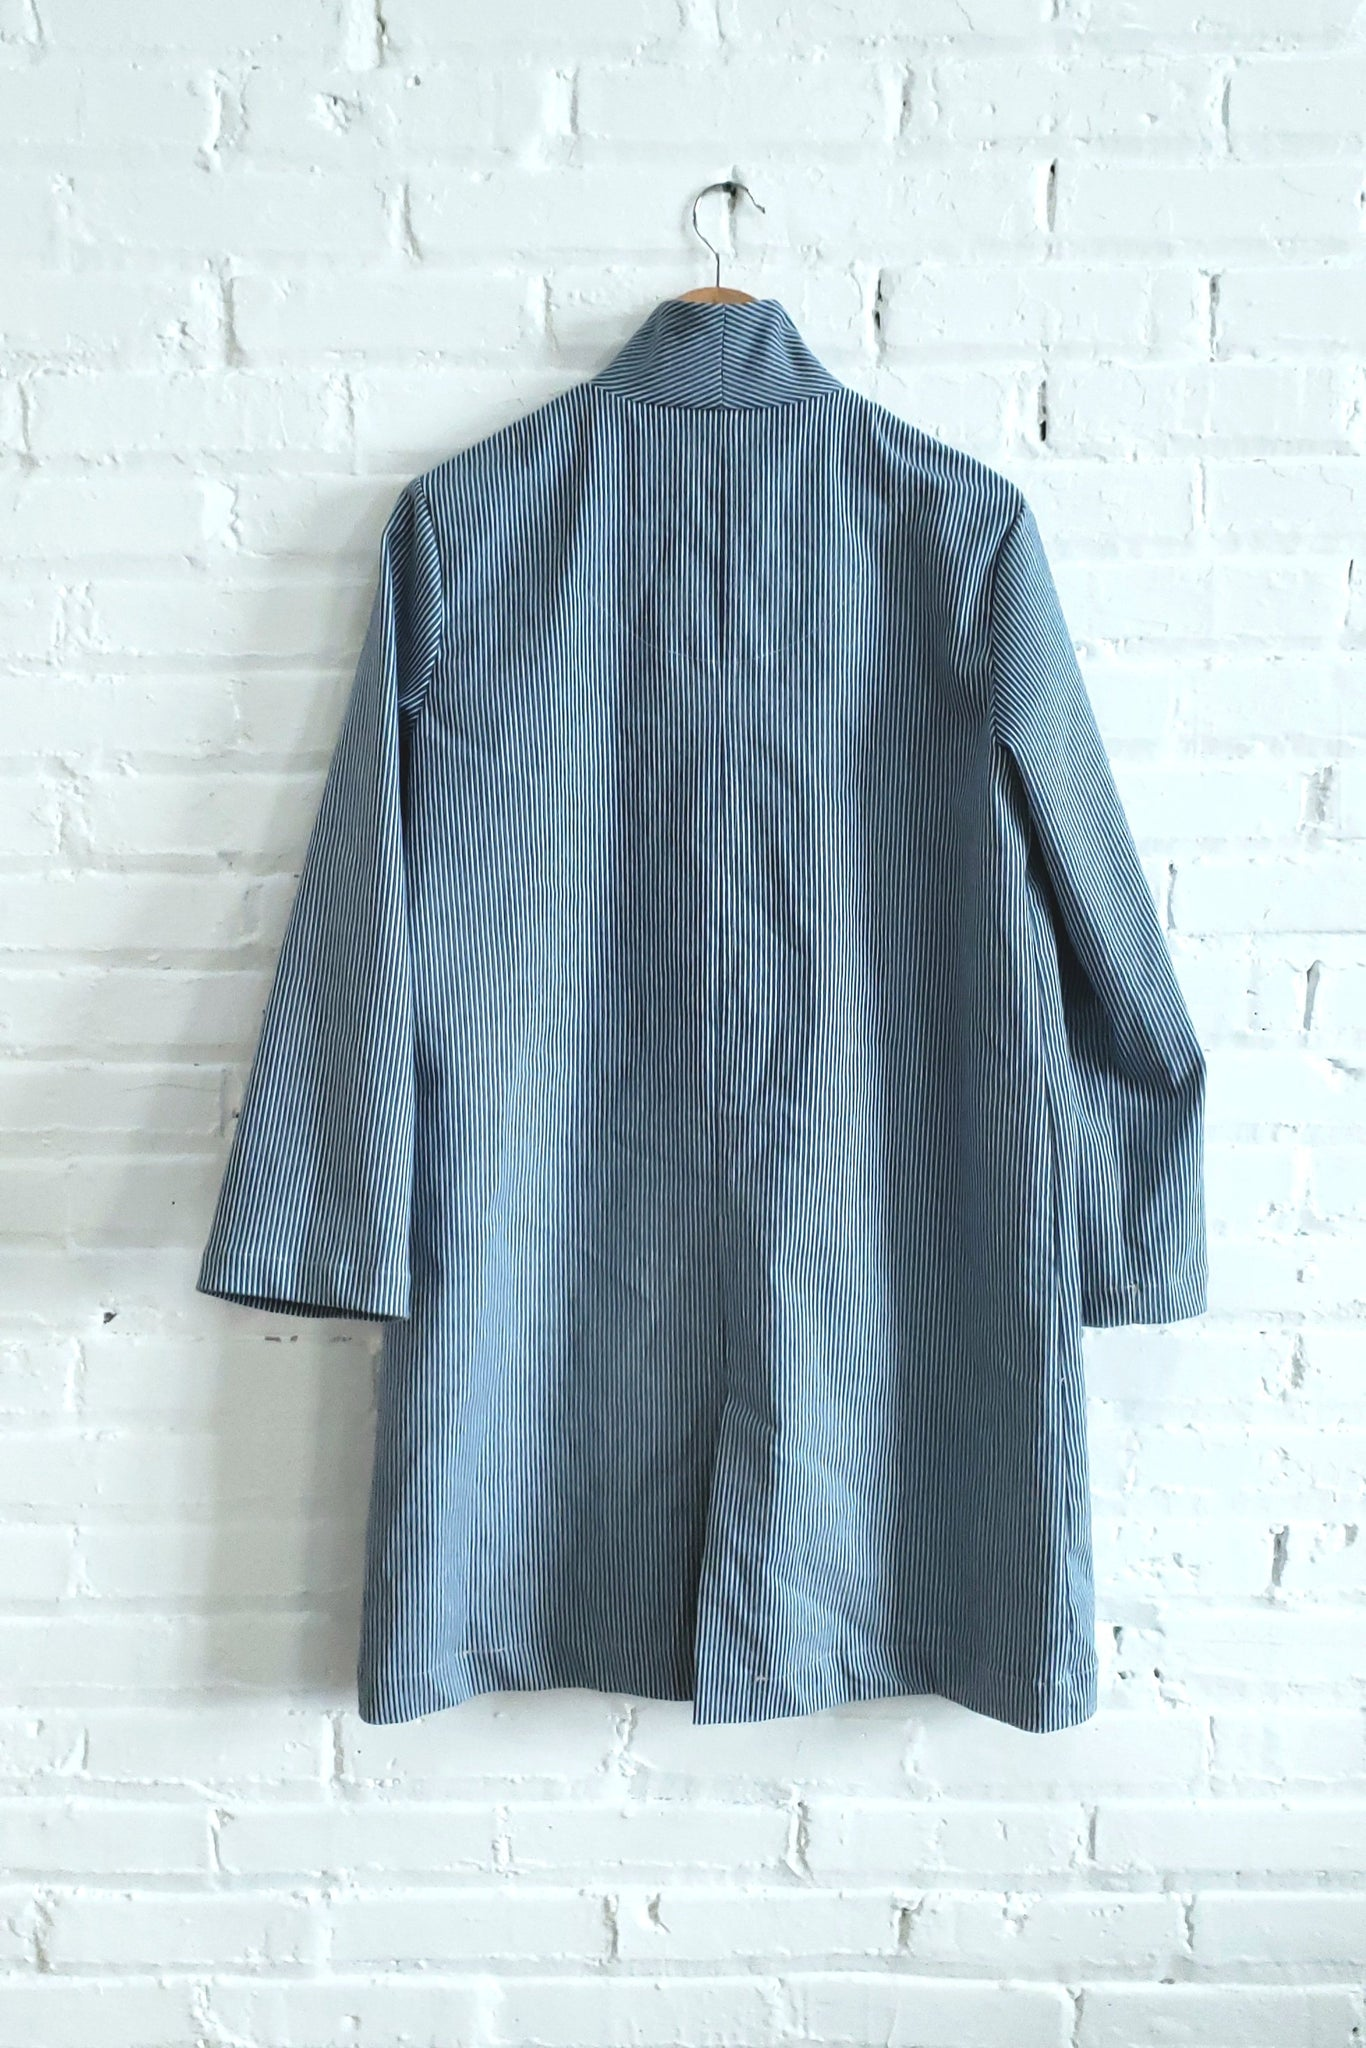 INGRID labcoat, Railroad, size Medium